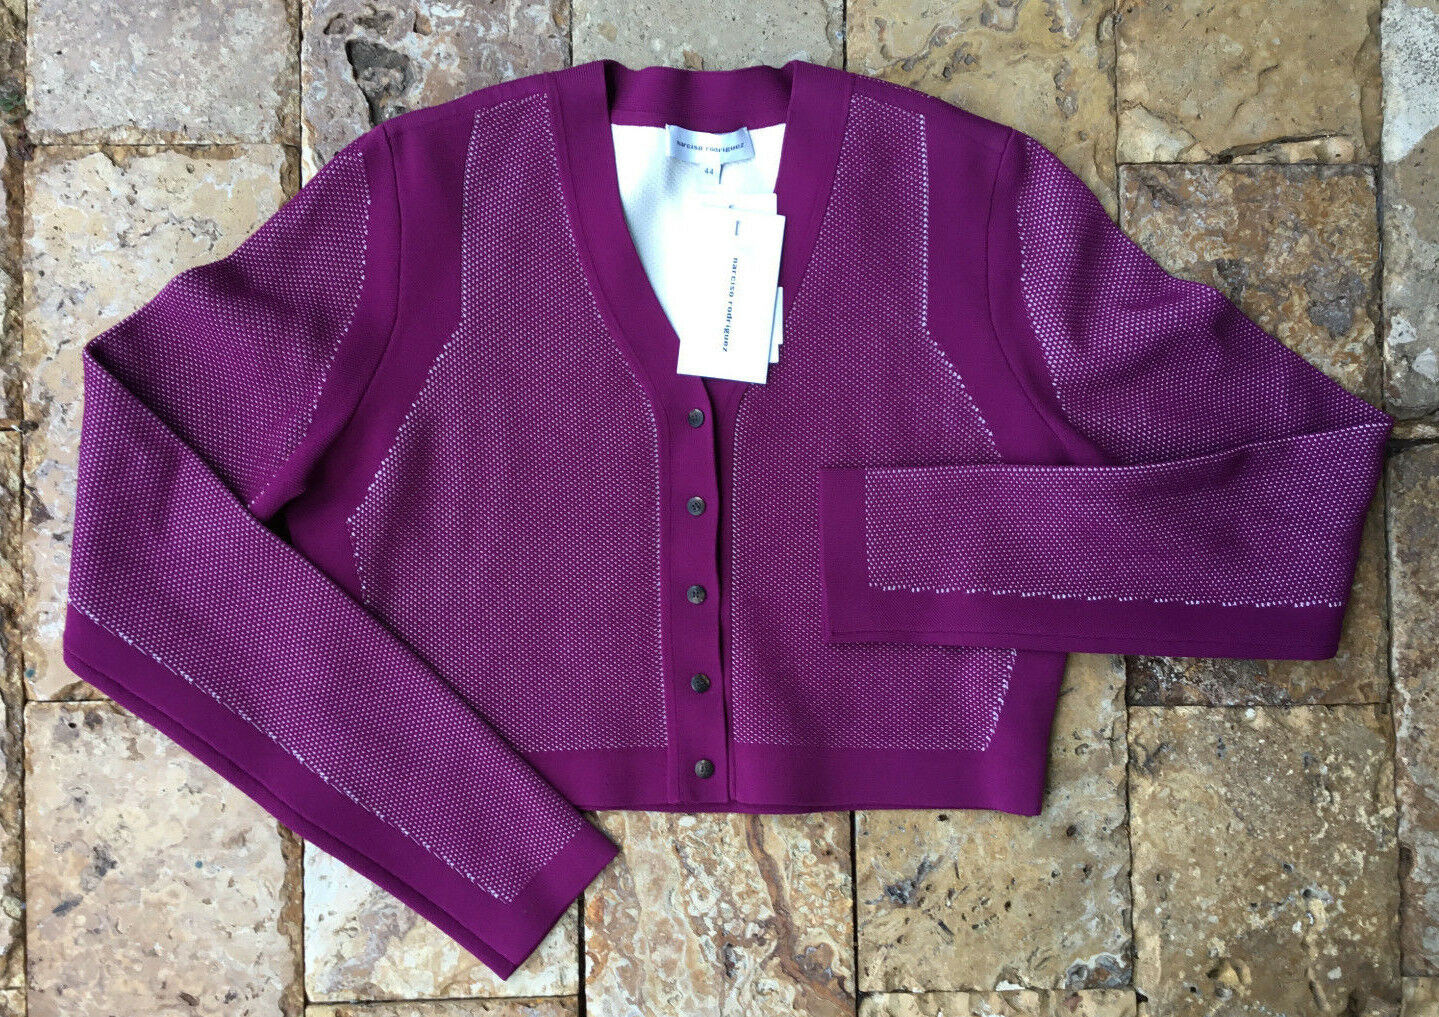 NARCISO RODRIGUEZ Shrug Short Cardigan Purple, size 46